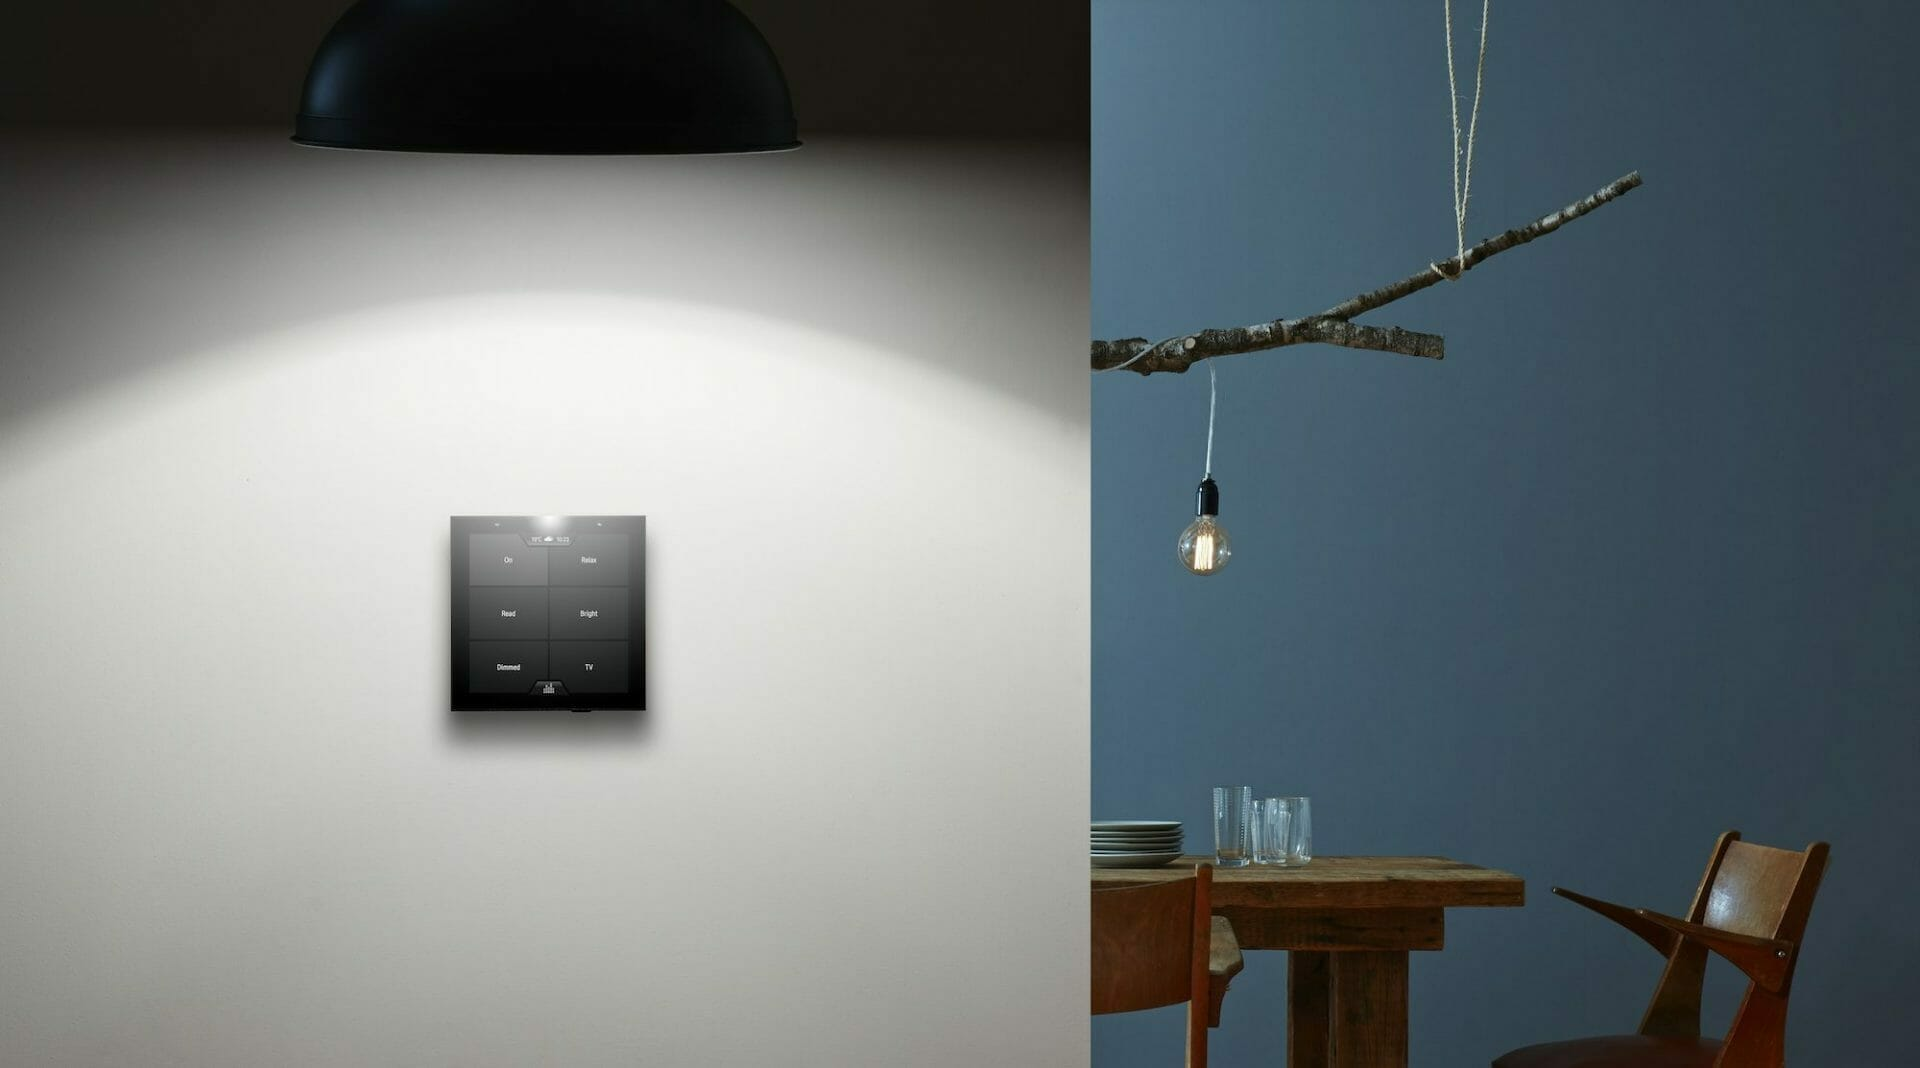 Violet's SmartSwitch Lite wall mounted with a lamp above it and a dining table in the background